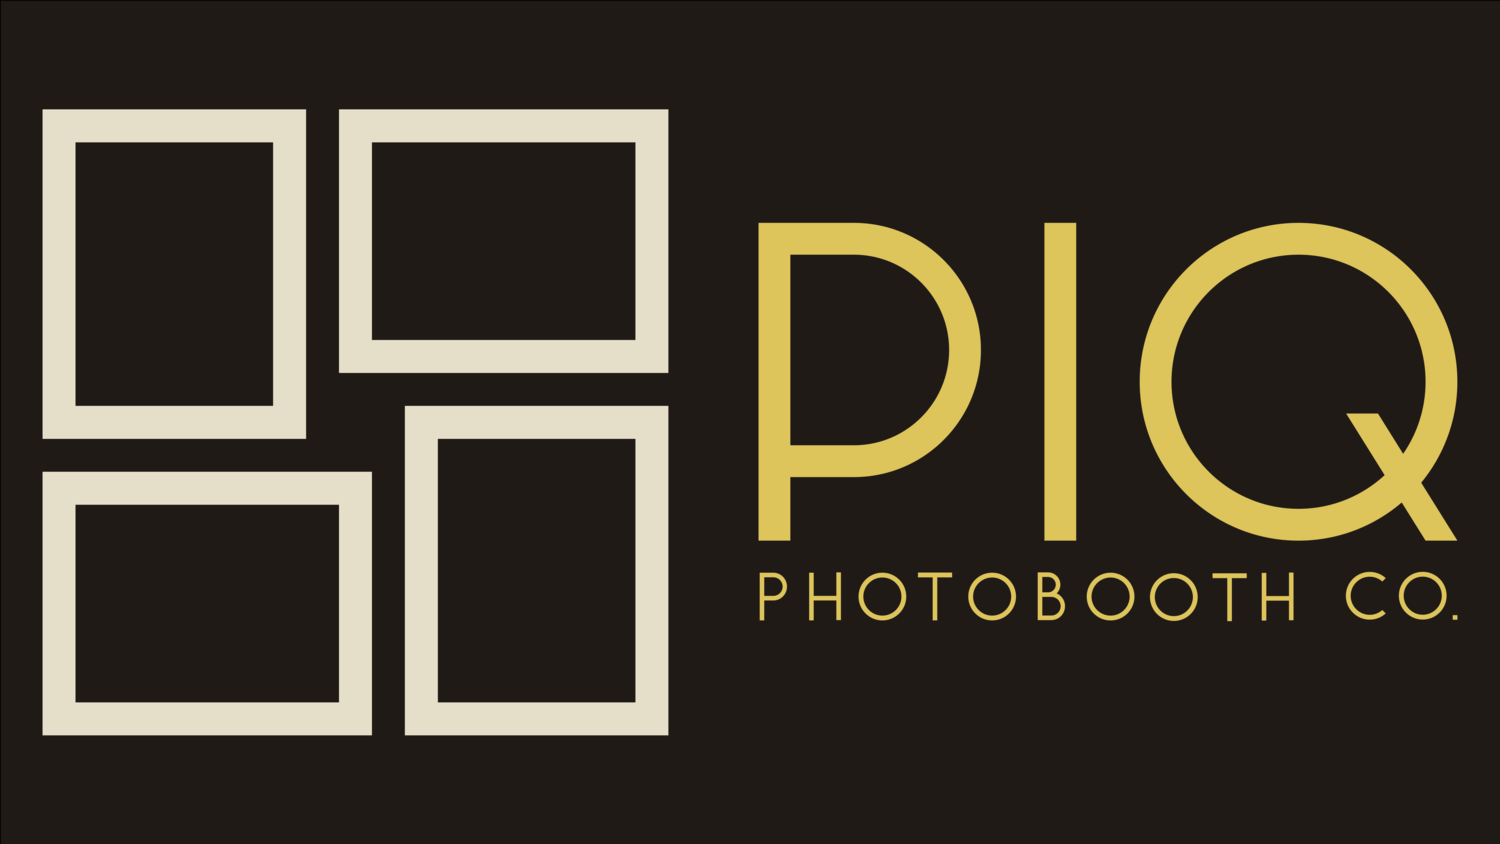 PIQ PHOTOBOOTH CO.